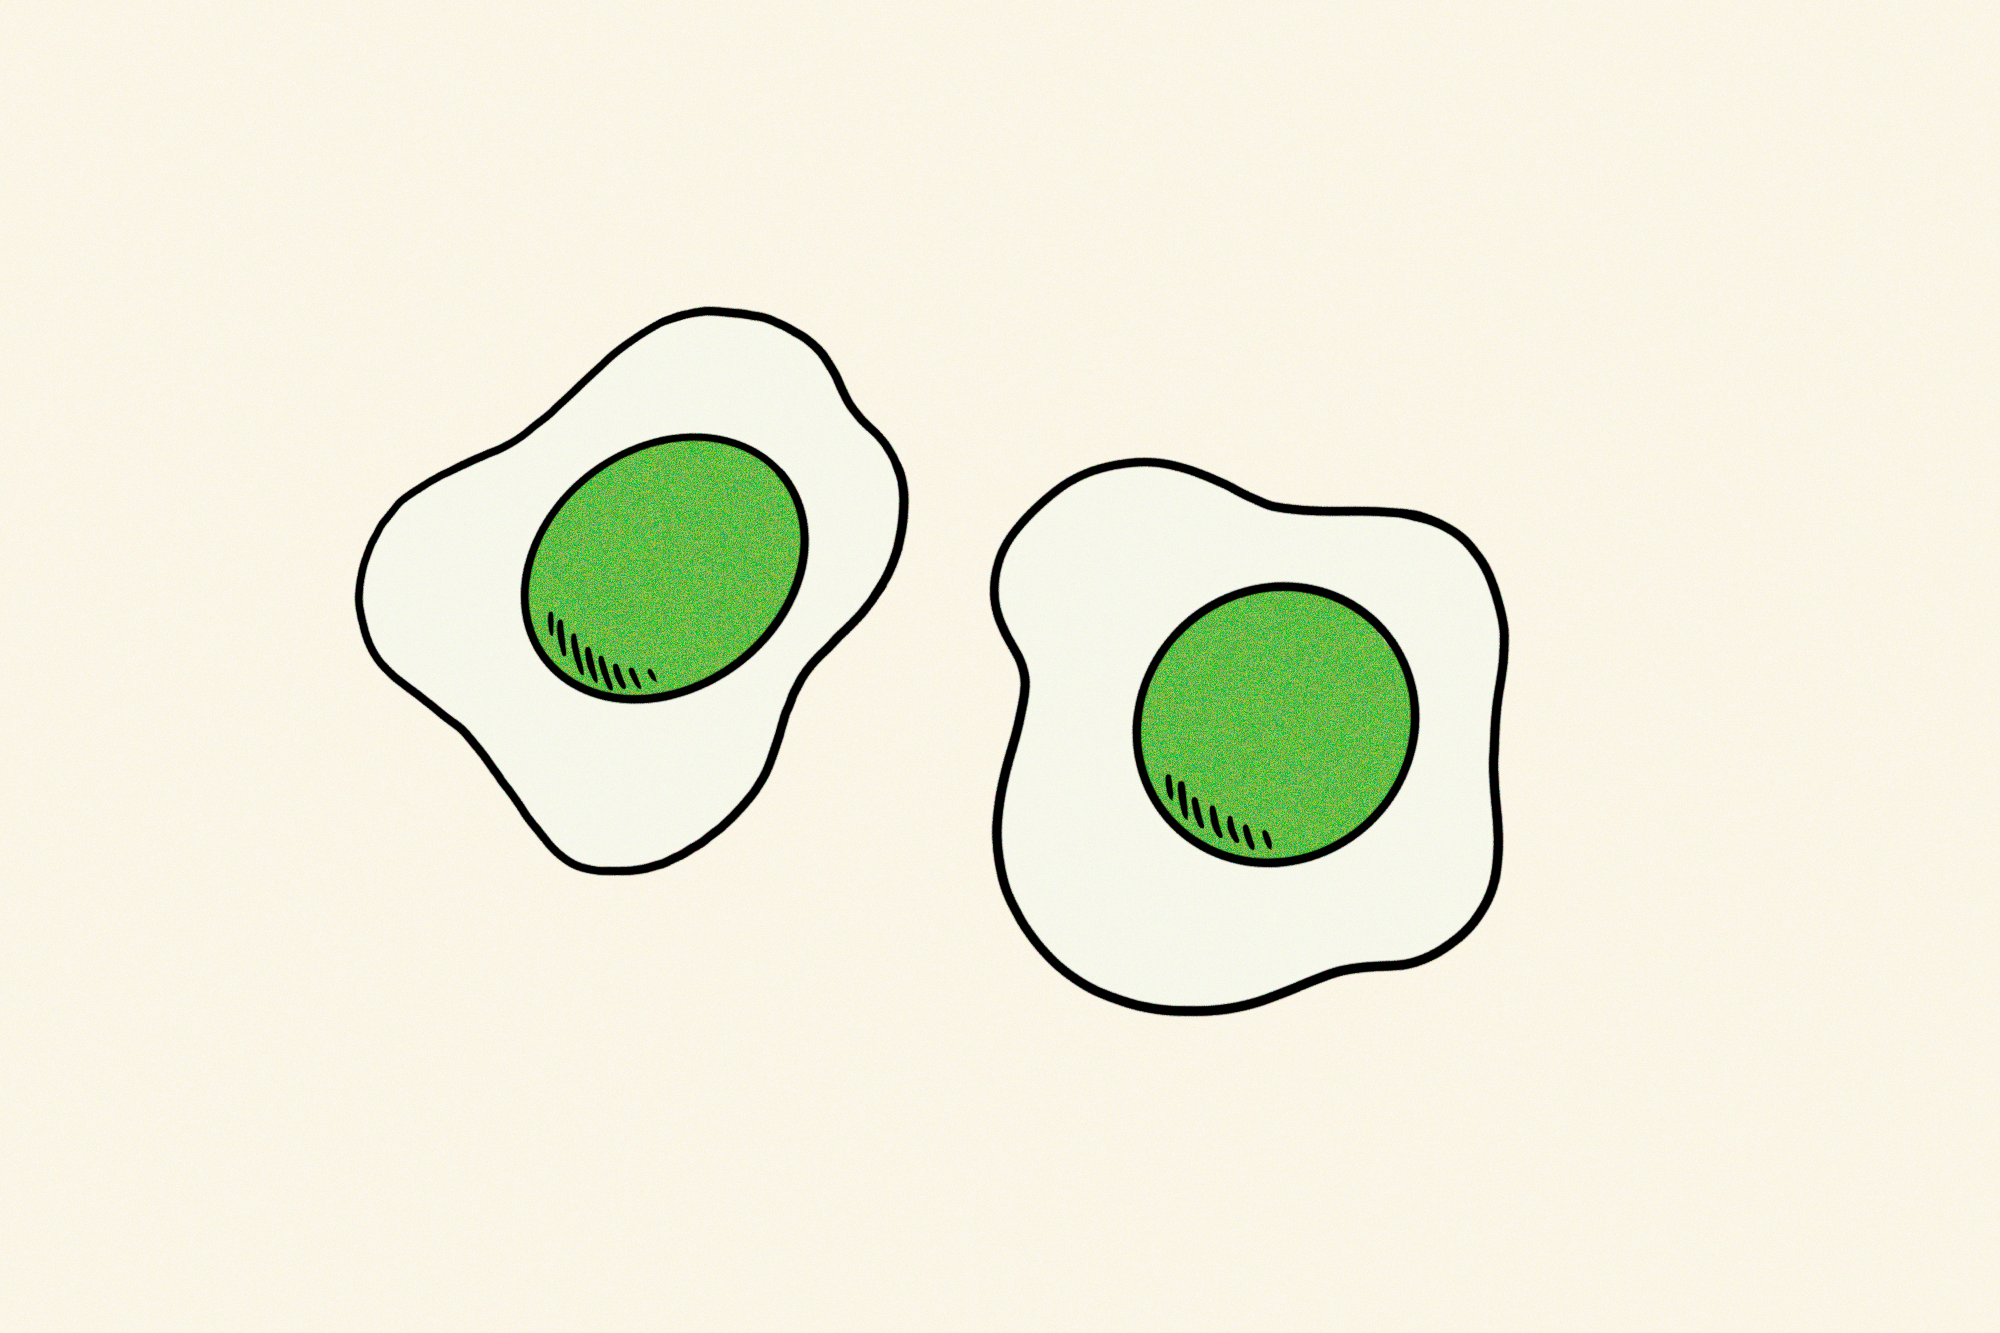 two eggs with green yolks